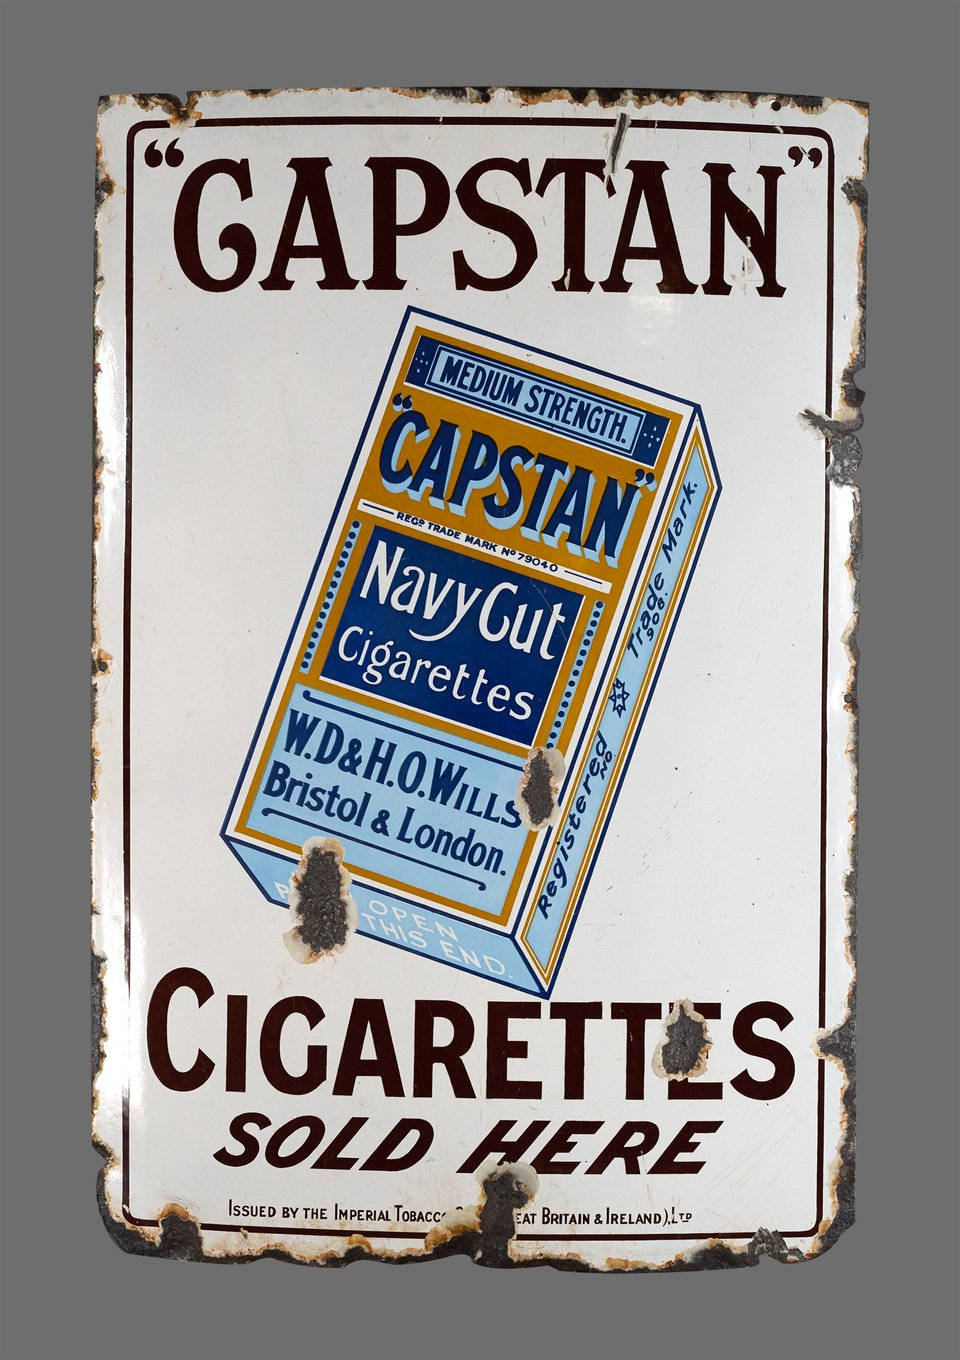 Capstan Navy Cut Cigarettes – Vintage poster – ANONYME – 1920